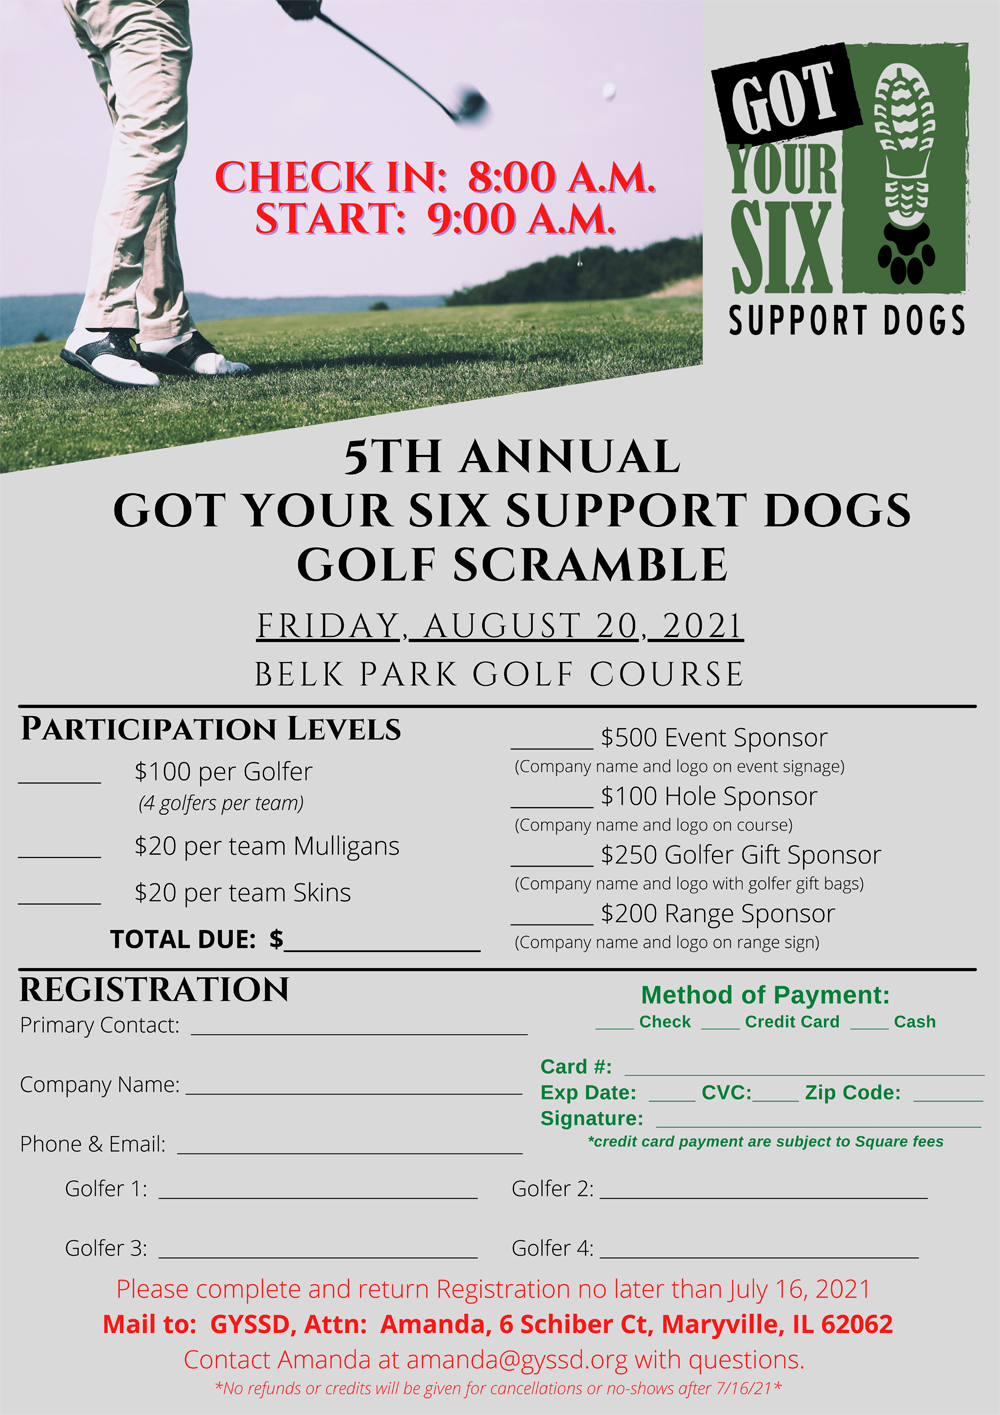 5th Annual Got Your Six Support Dogs Golf Scramble